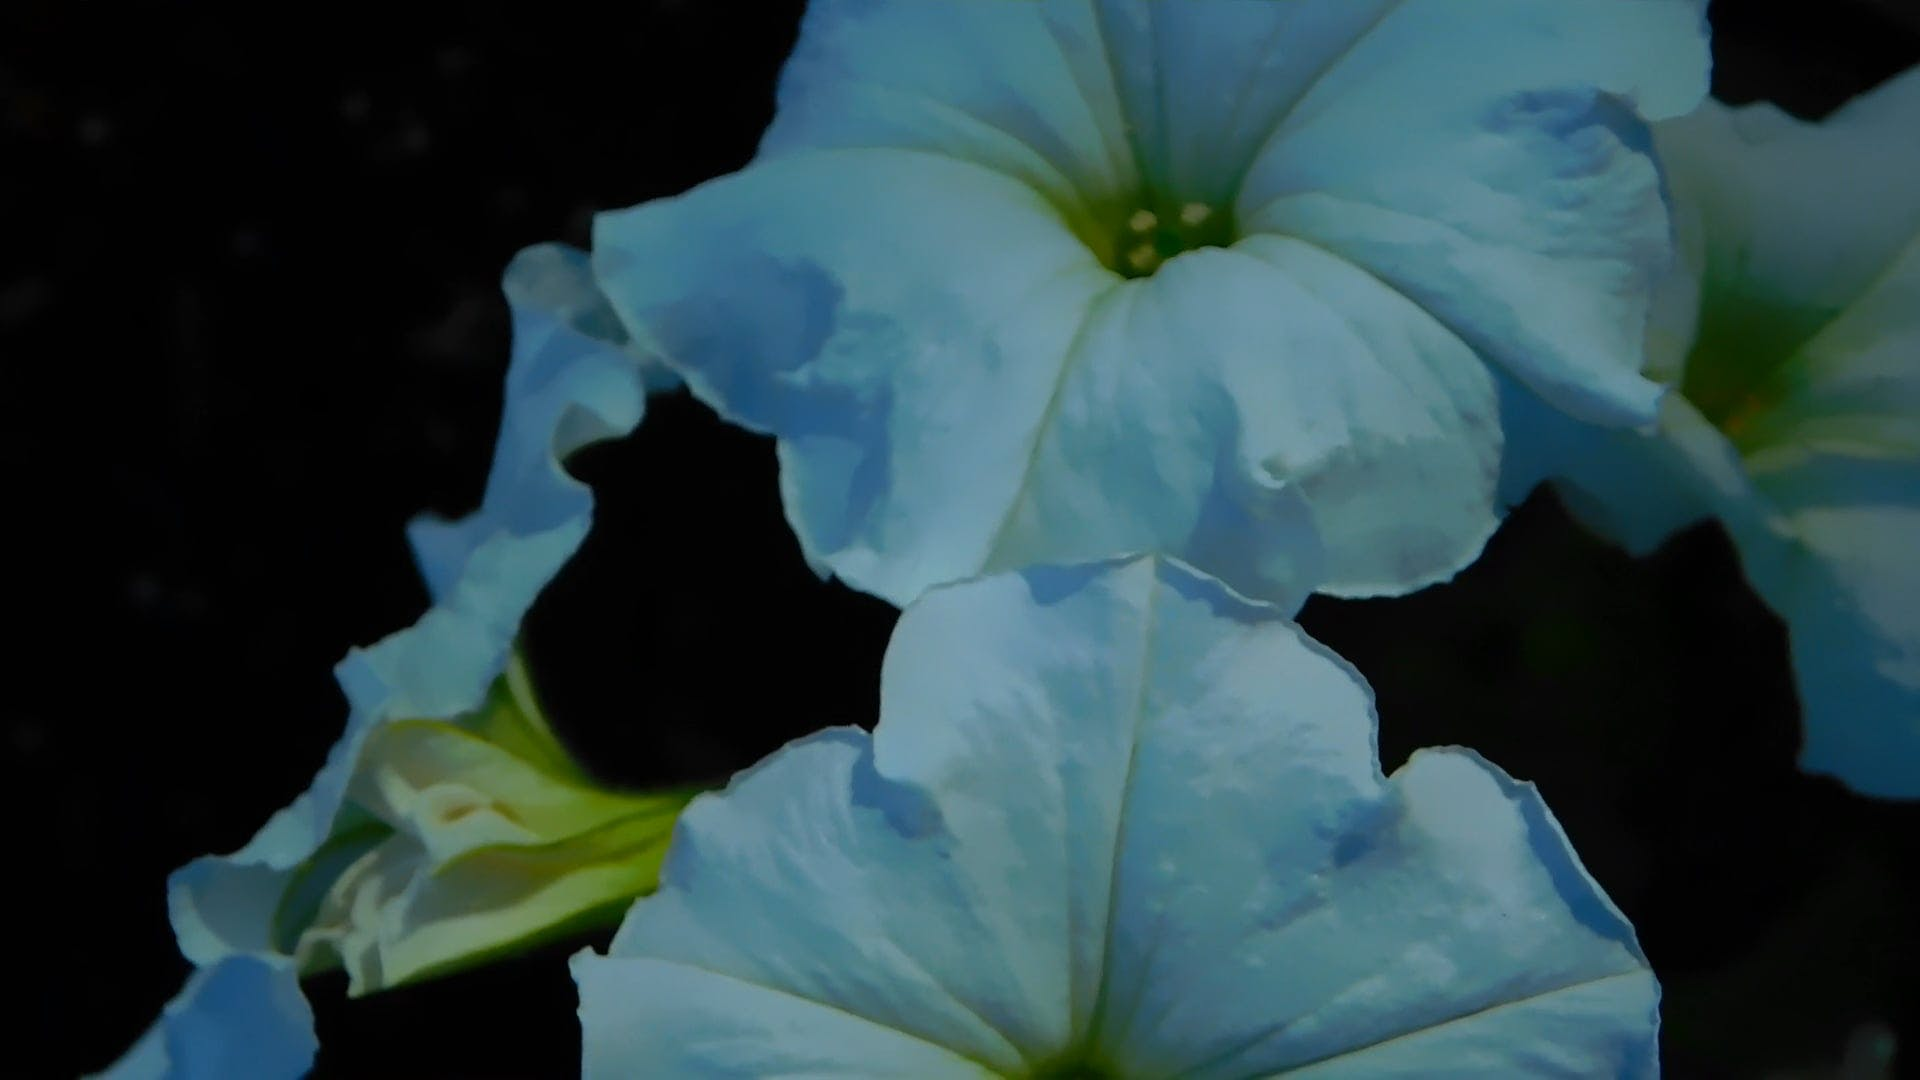 Close-Up Video Of White Flower